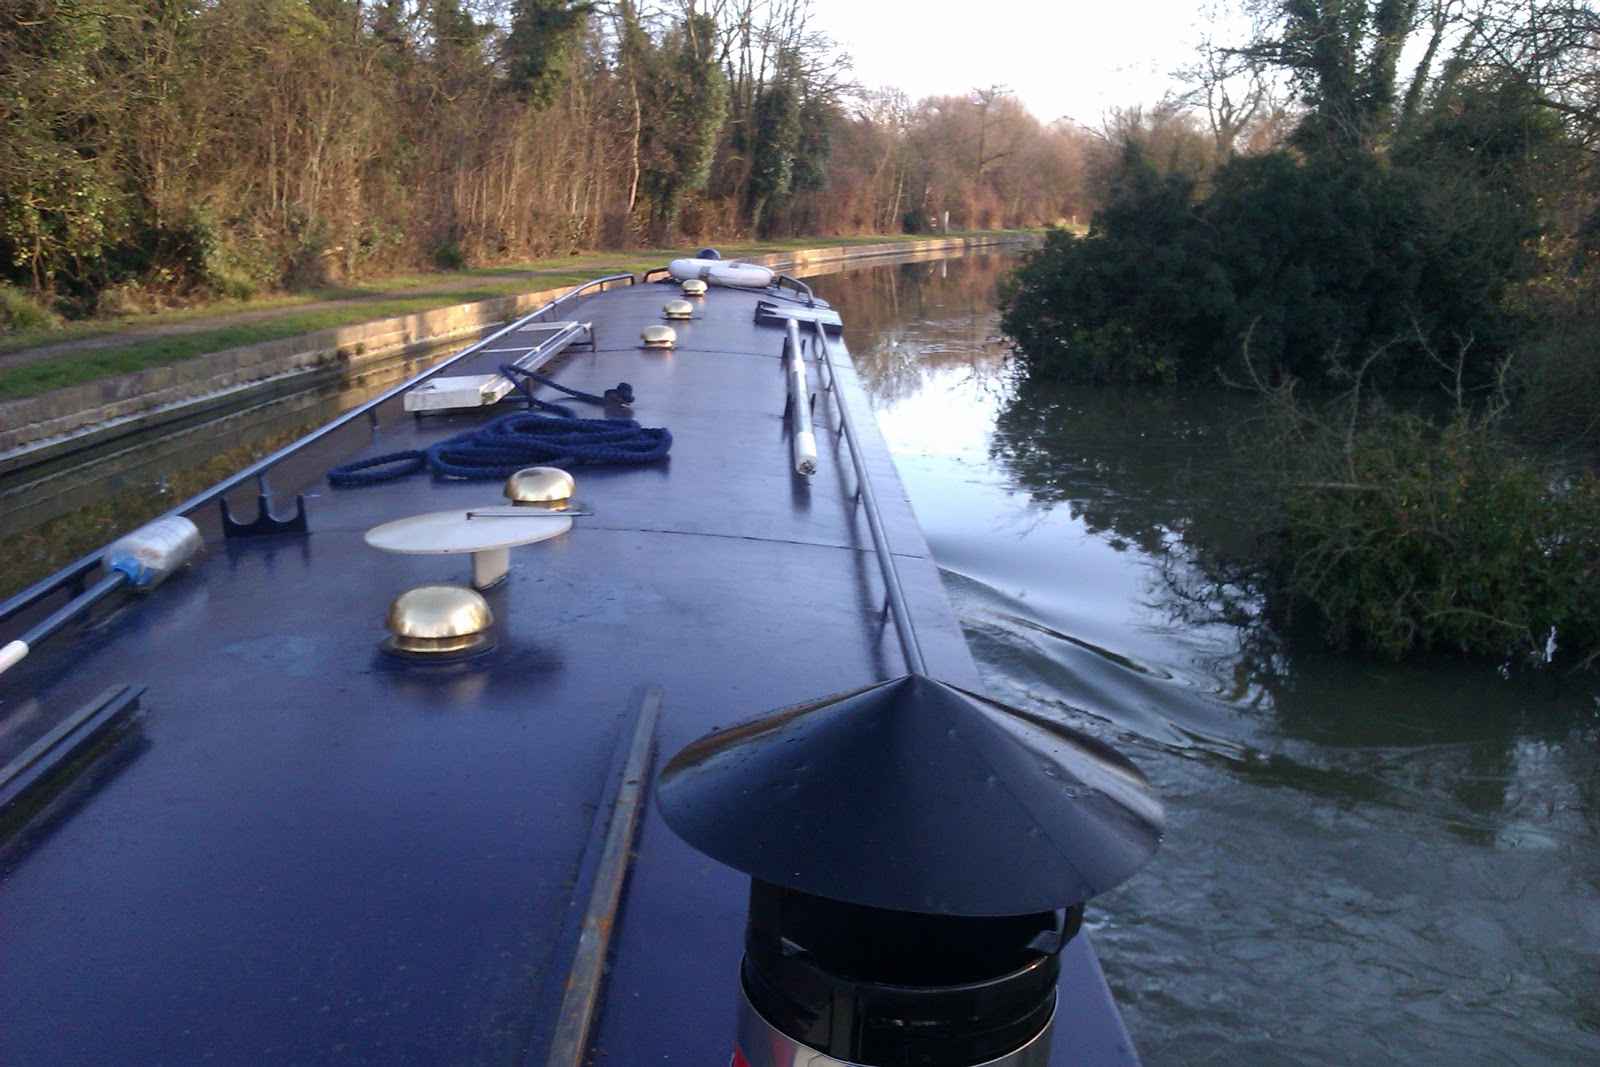 Soar Navigation near Pillings Lock